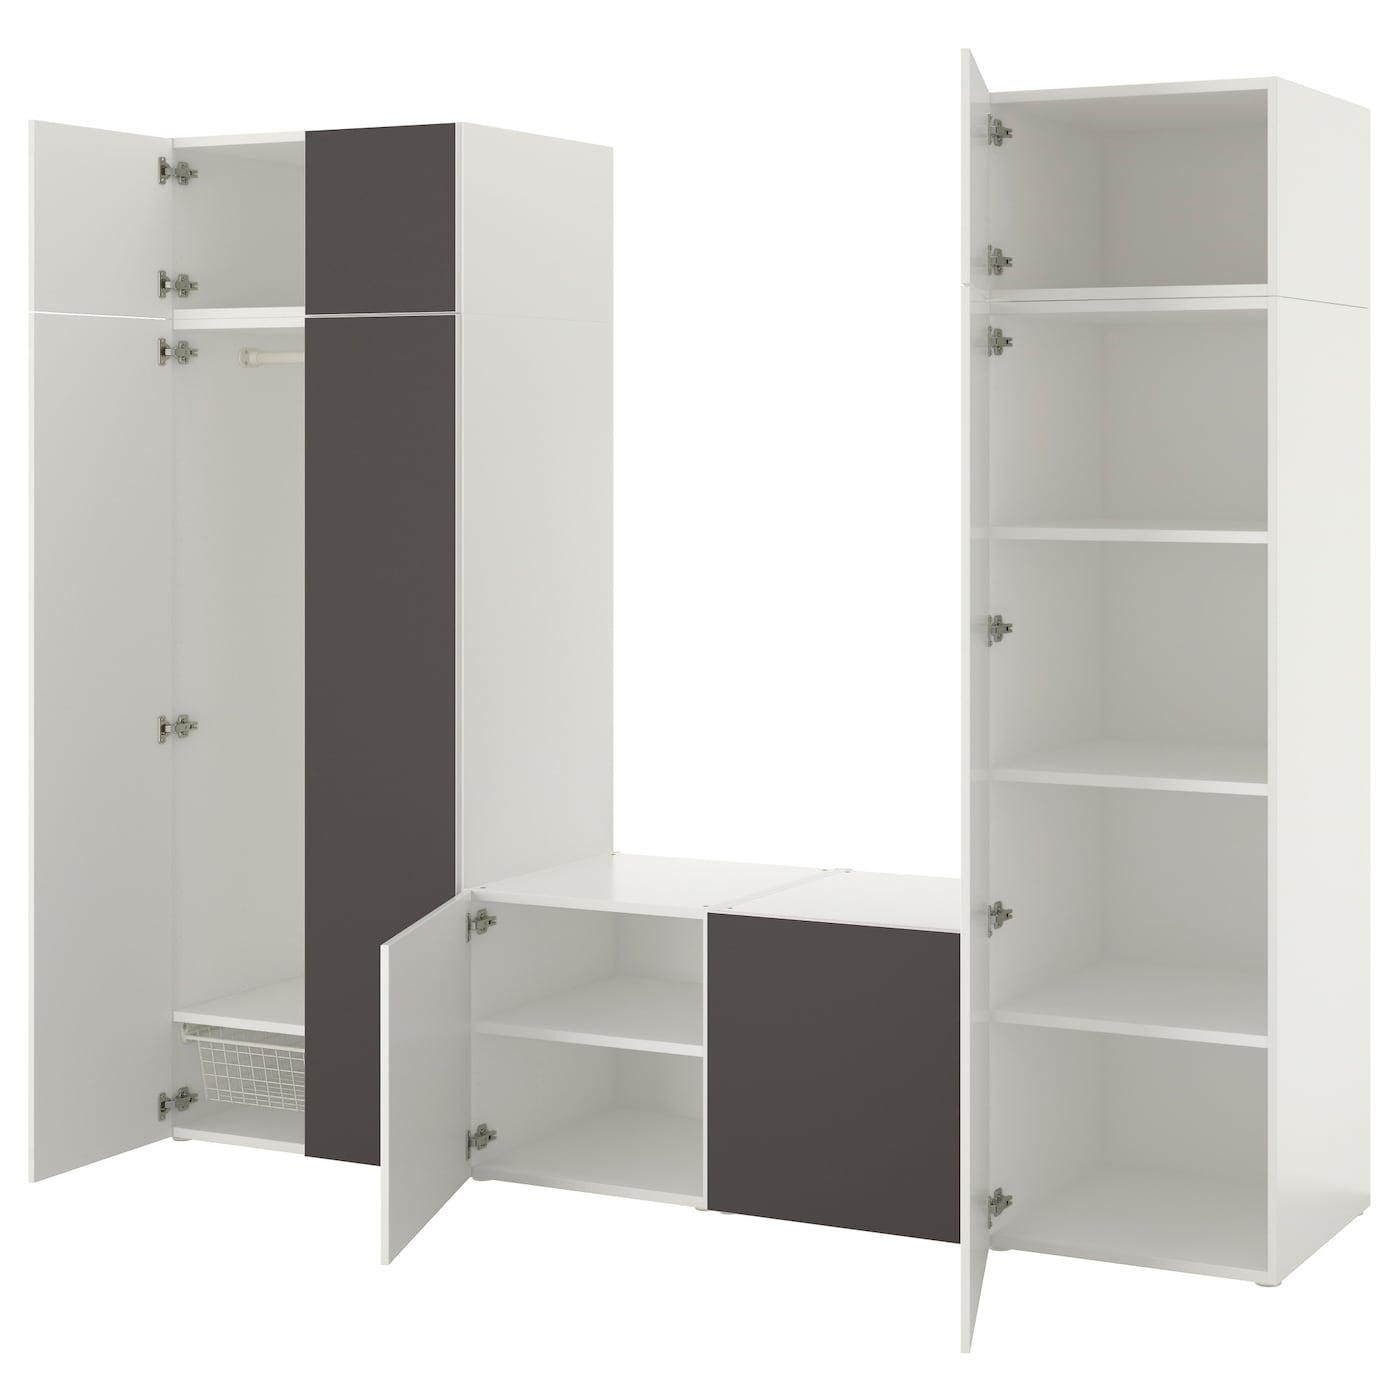 christopher wardrobe grey bedroom lighter products top furniture leo castleford wxf